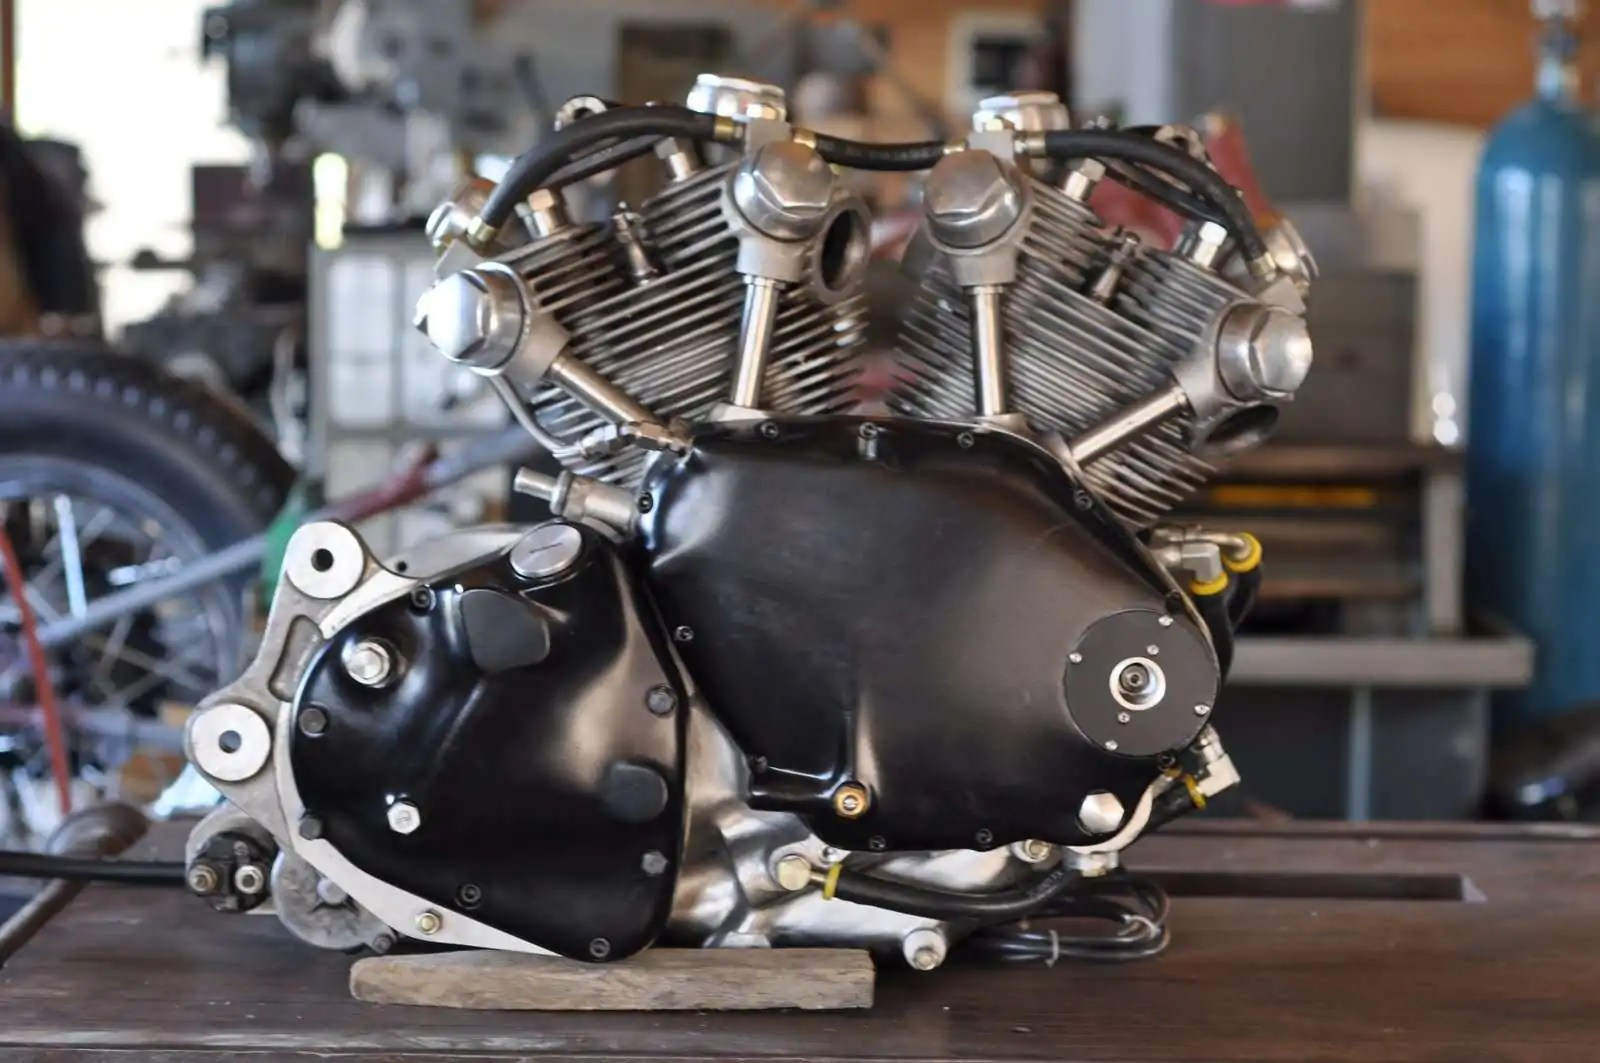 Reasons To Clean Your Motorcycle Engine